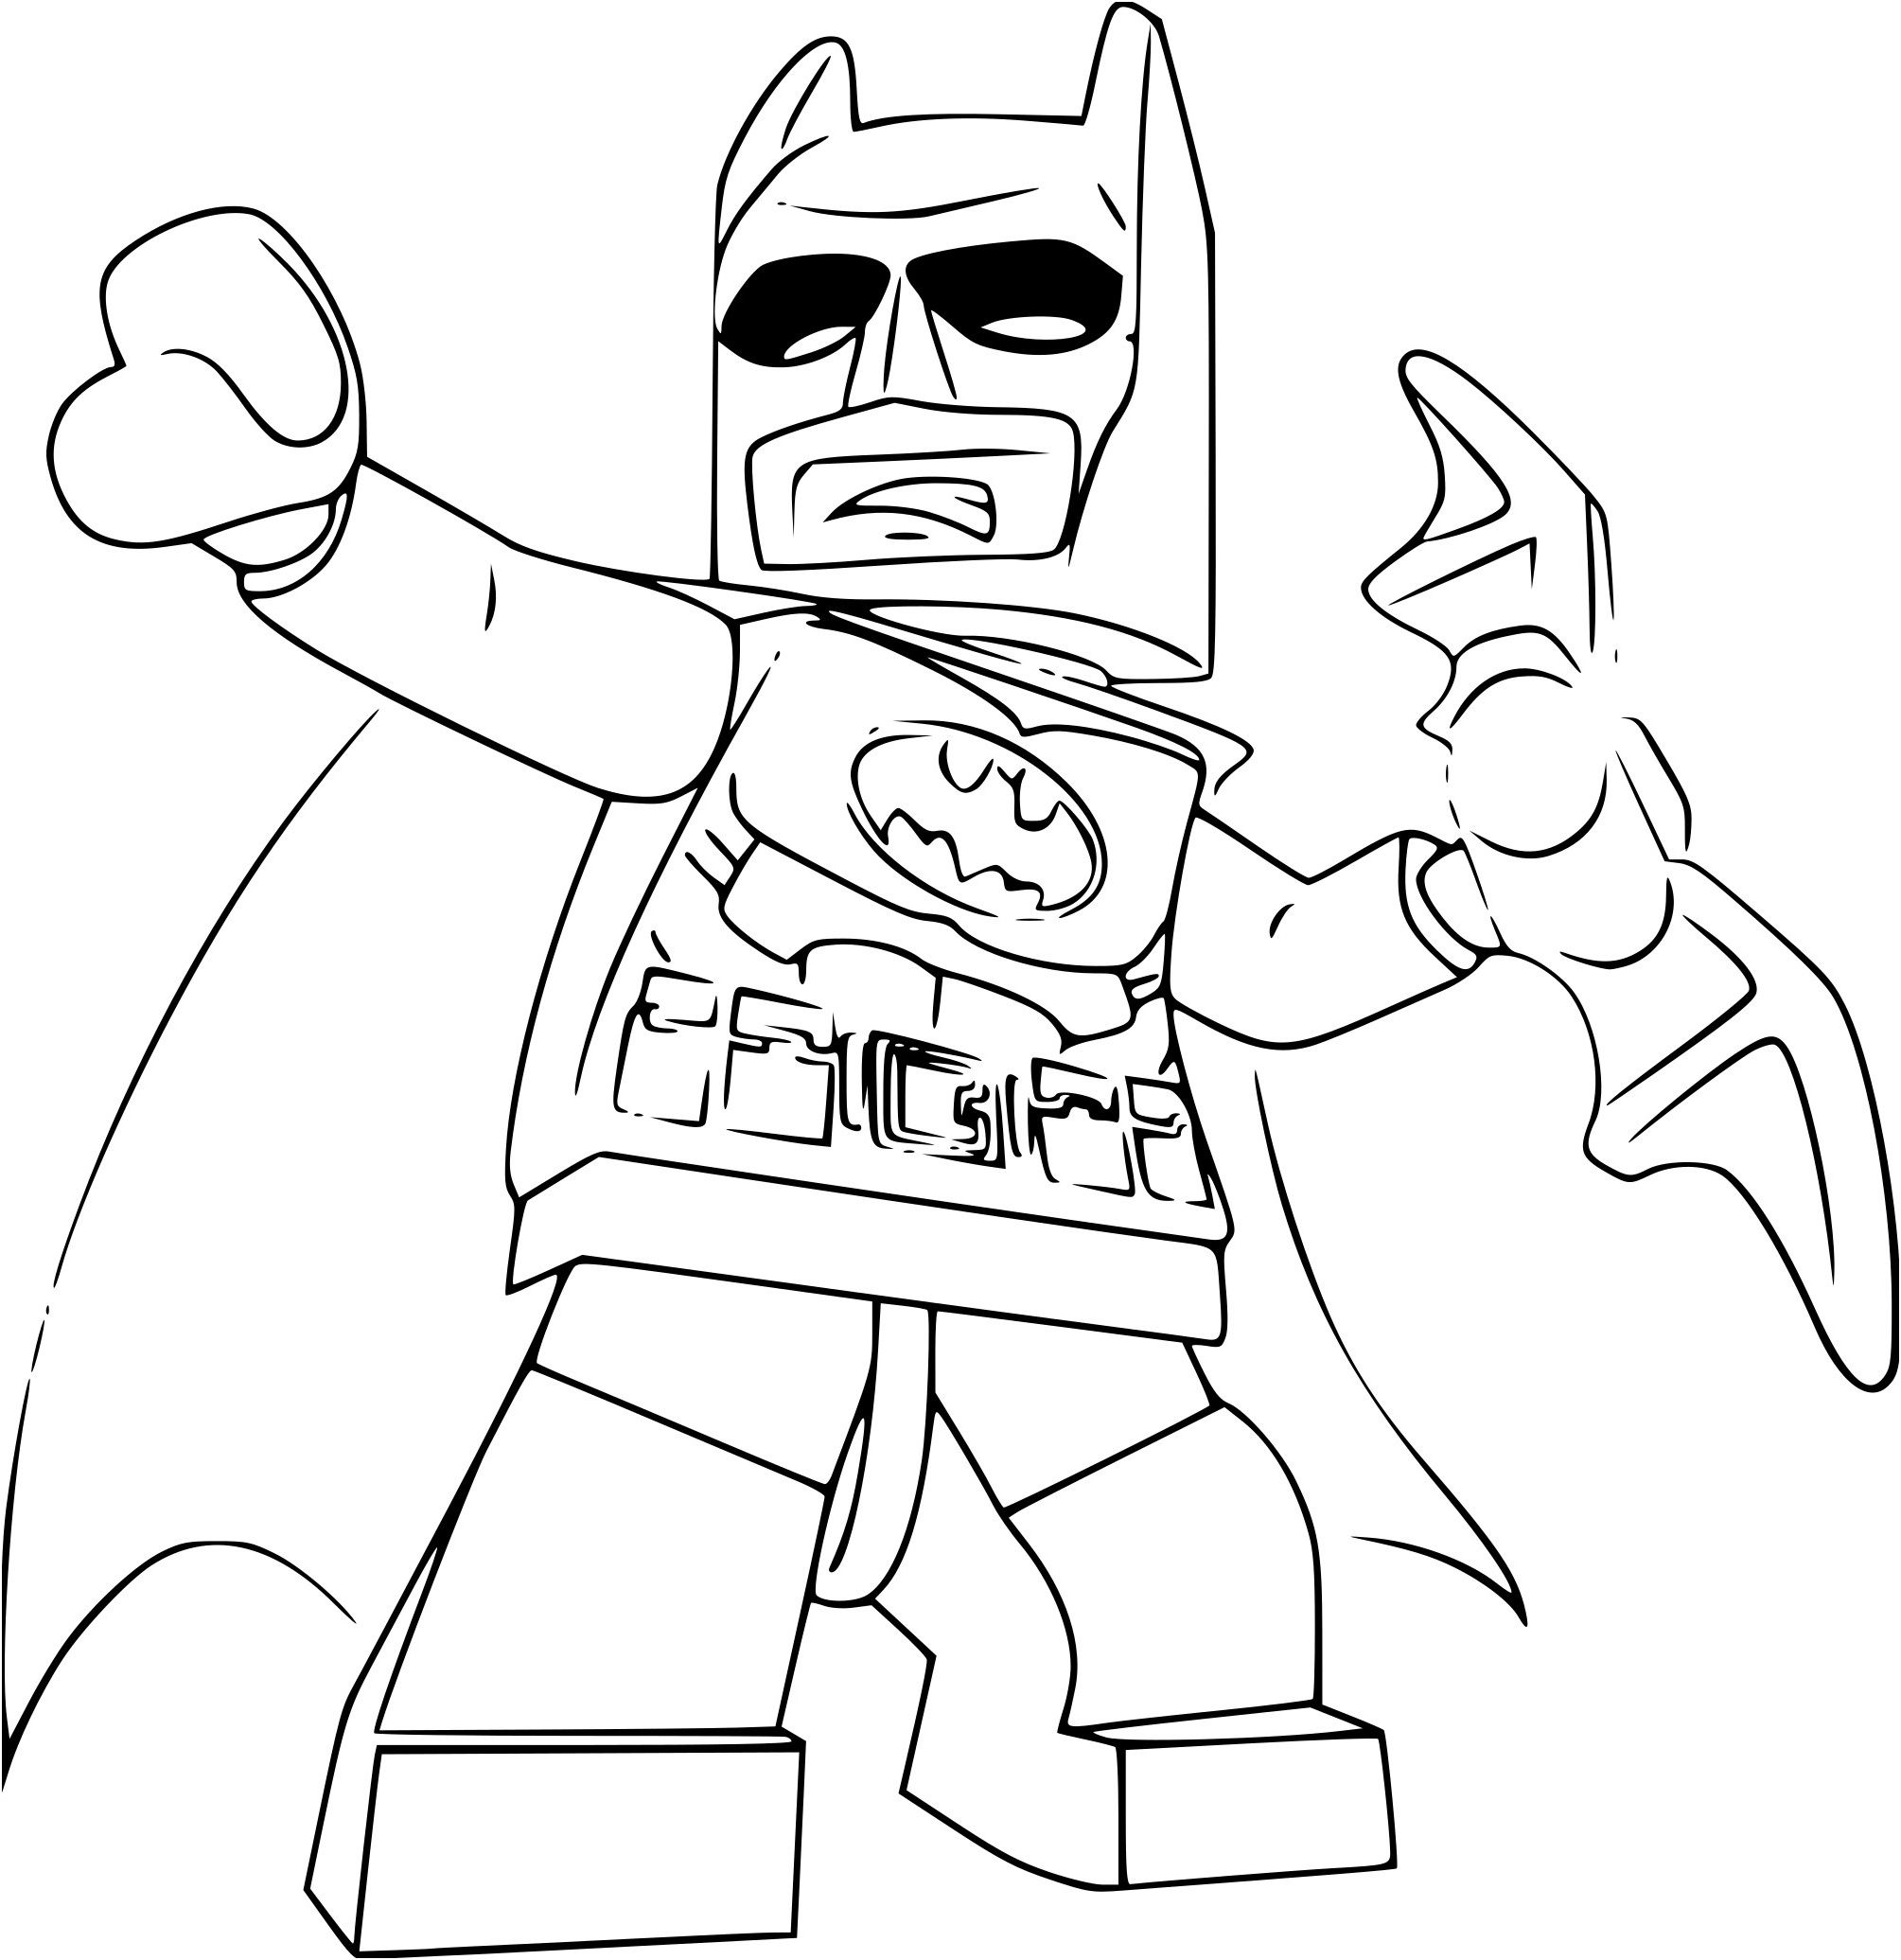 Haut Coloriage Lego Batman Movie 62 sur Coloriage idée with Coloriage Lego Batman Movie